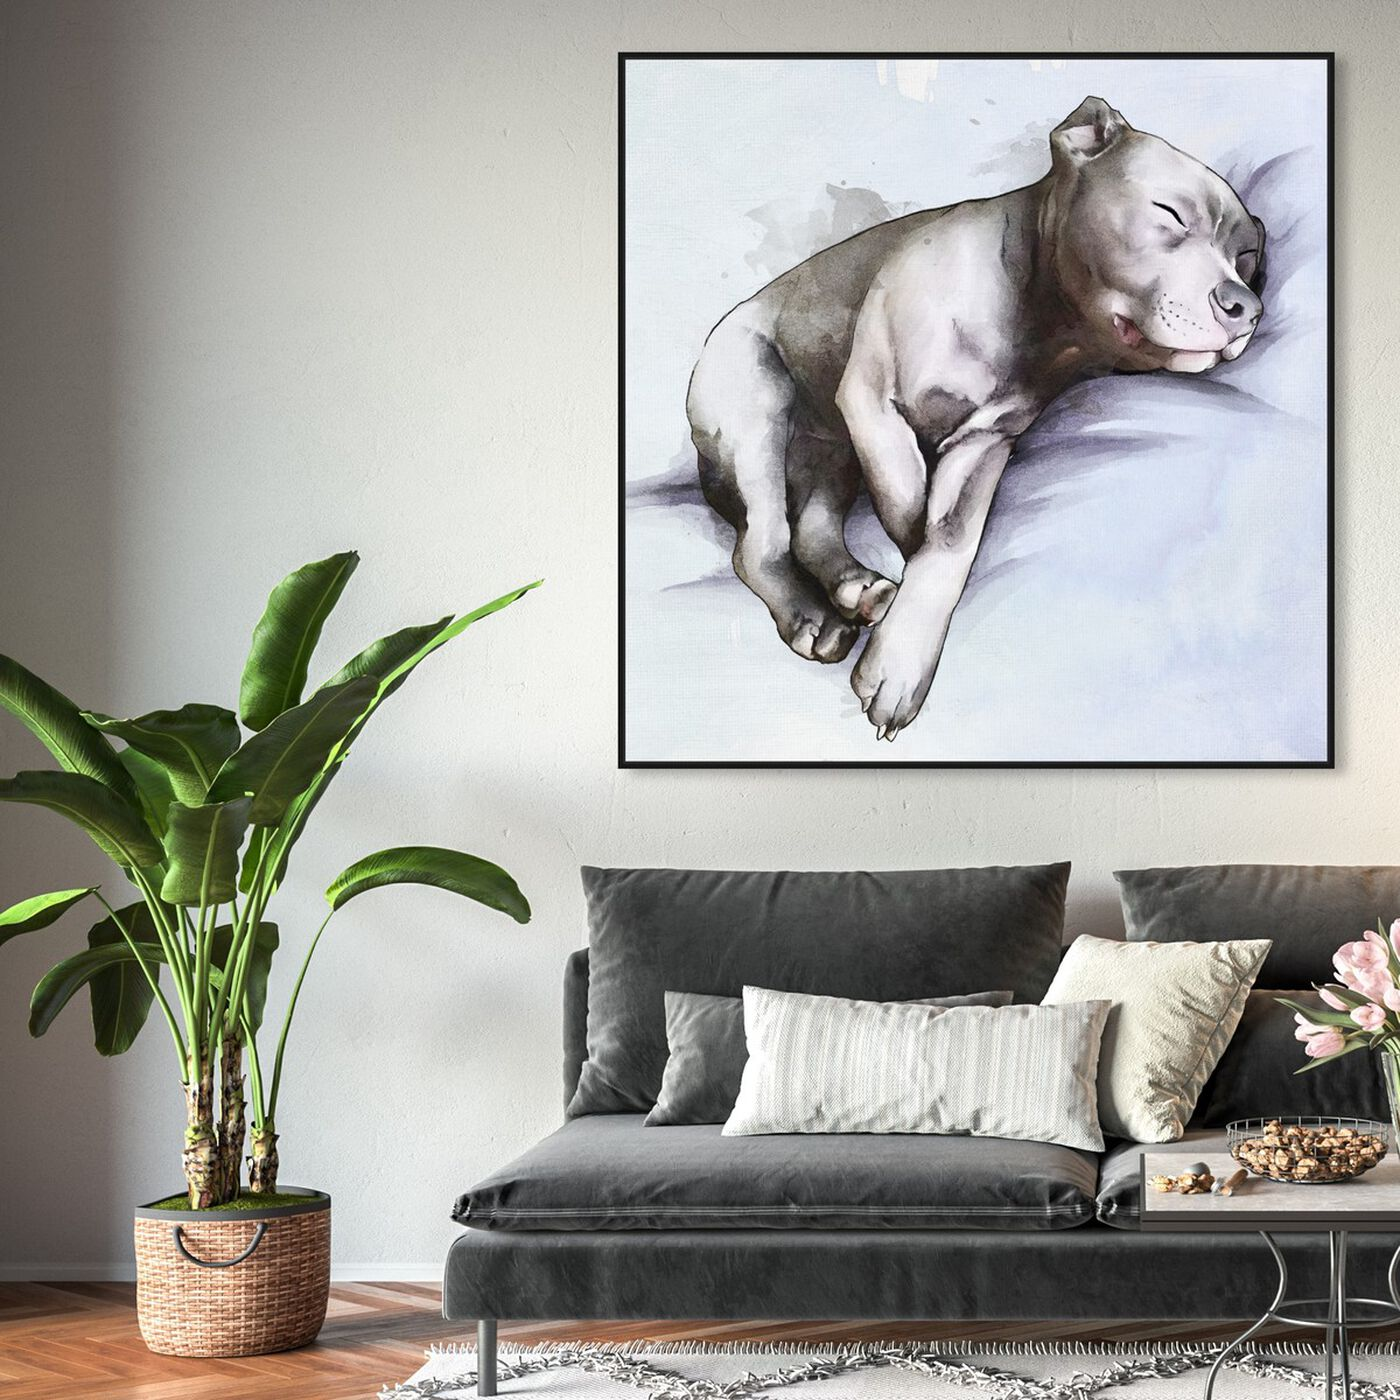 Hanging view of Sleeping Pitbull featuring animals and dogs and puppies art.